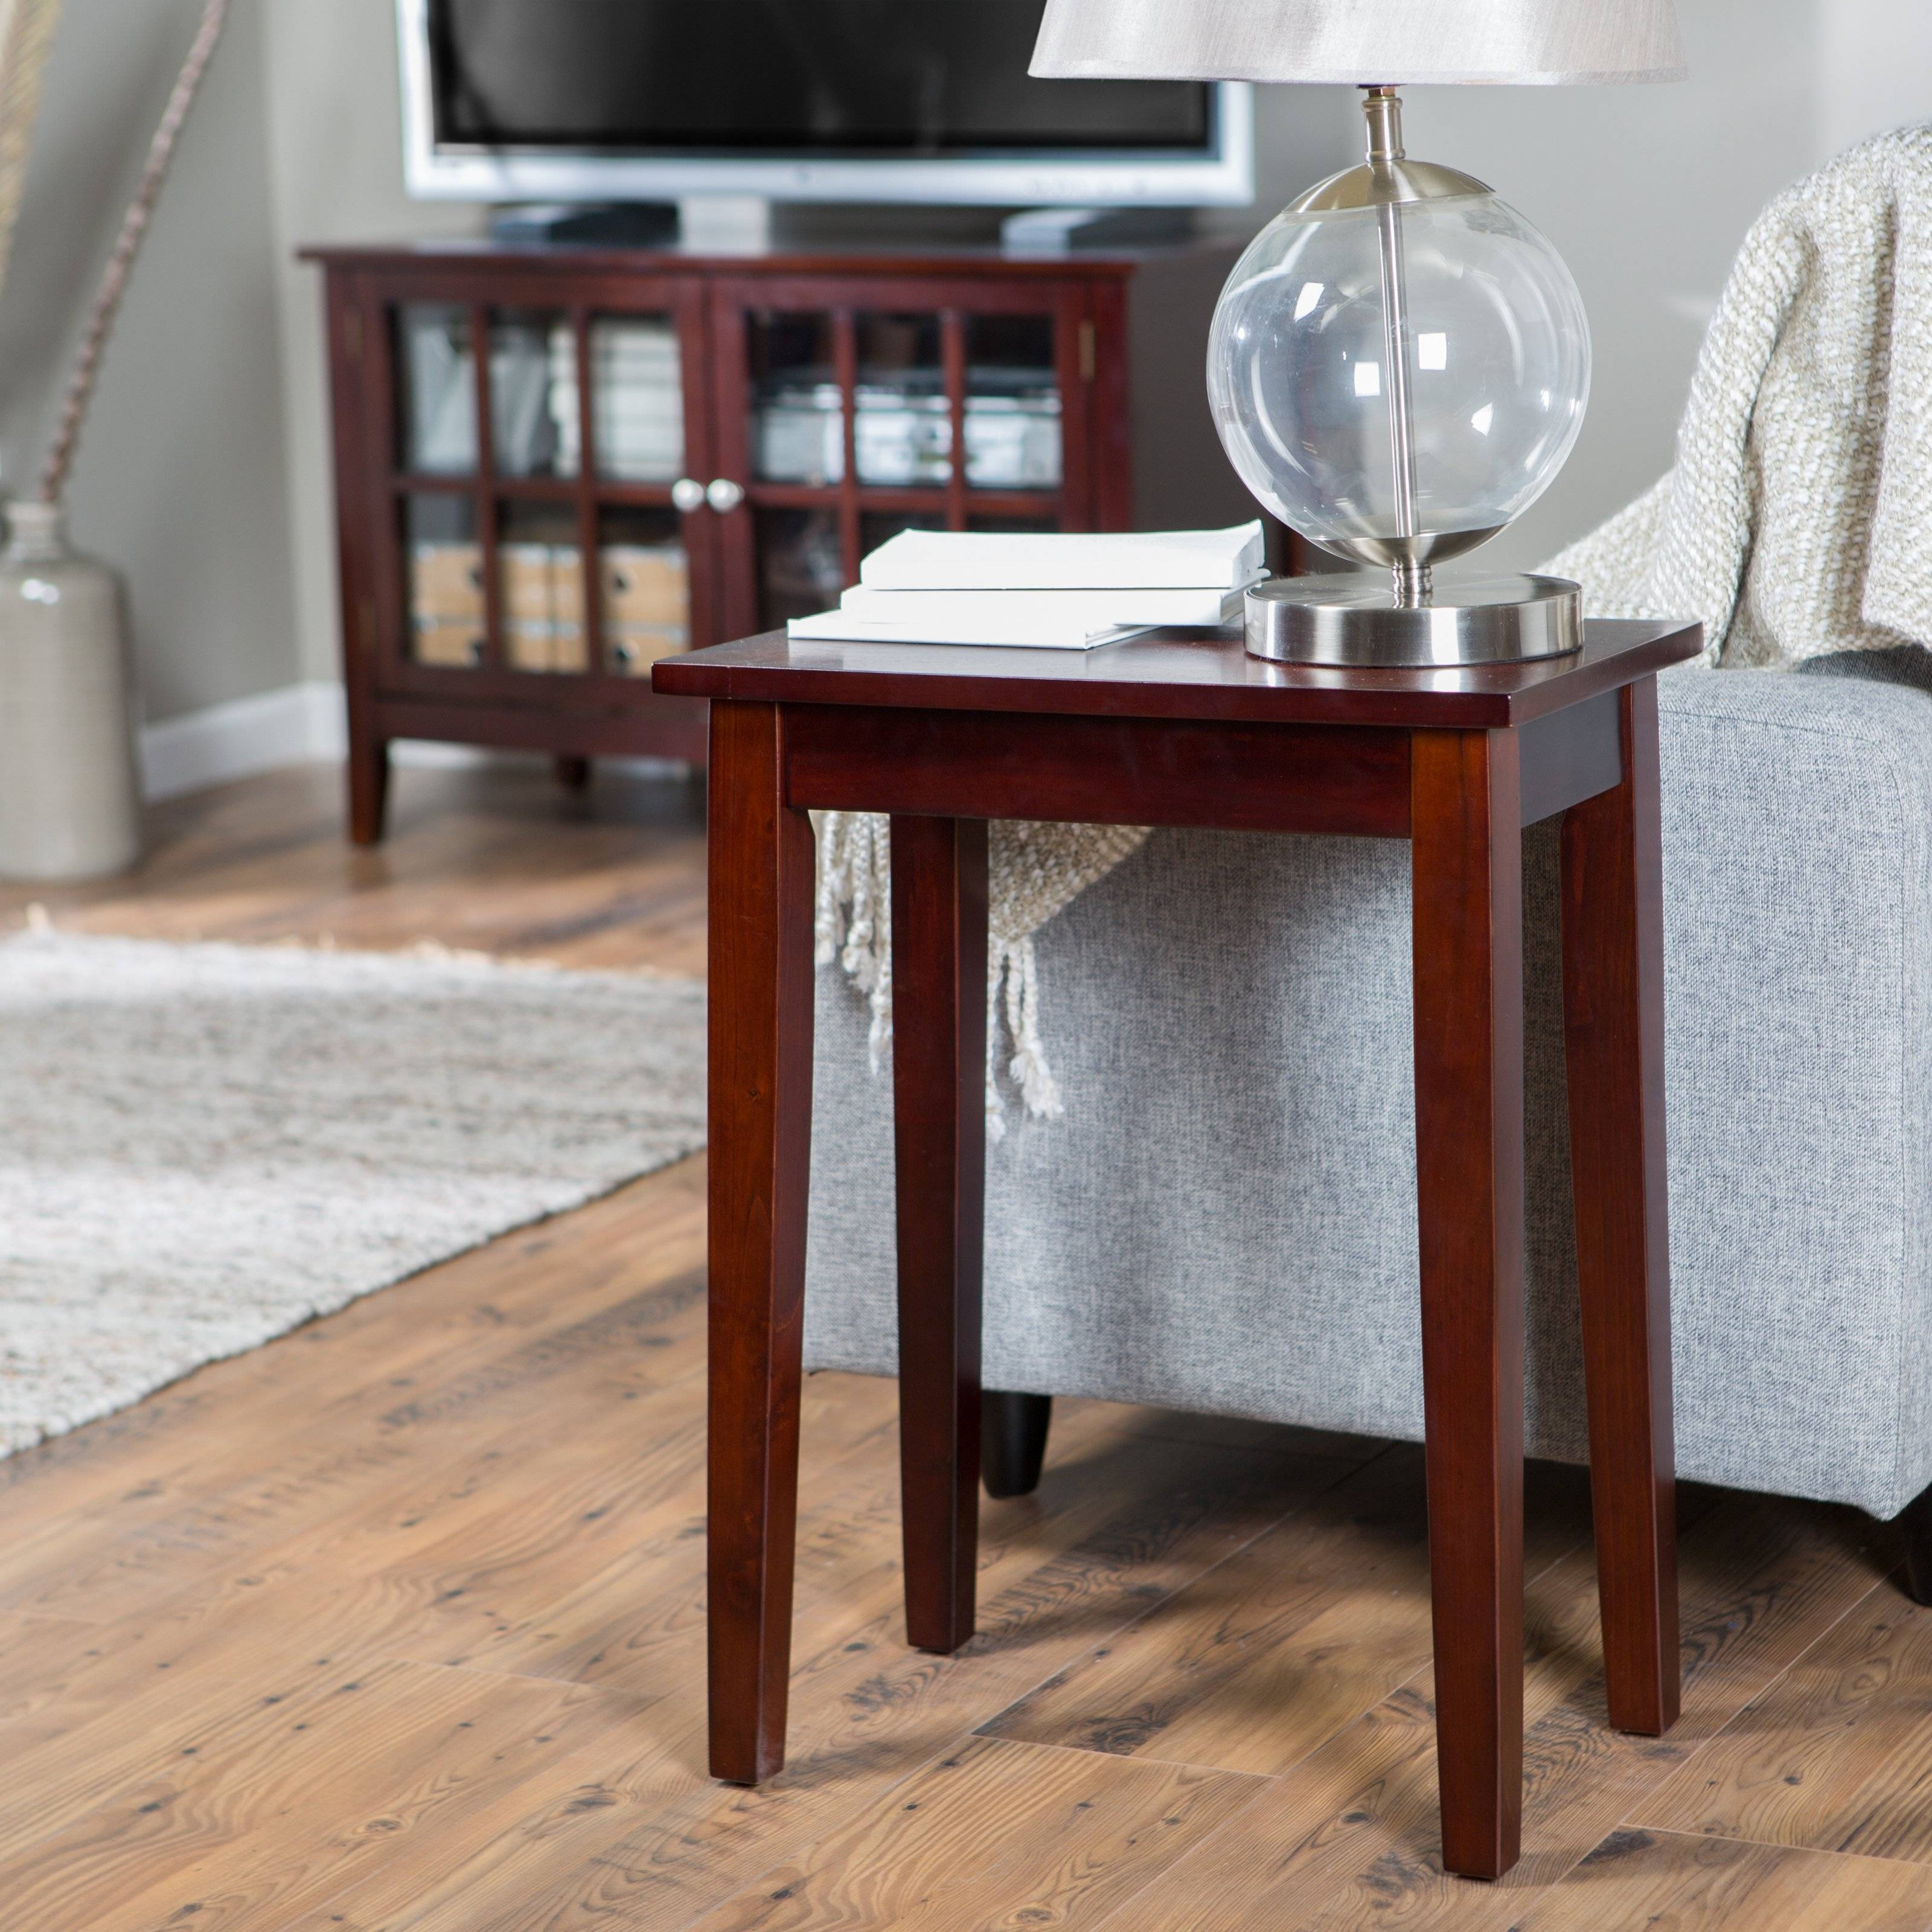 Turner Lift Top Coffee Table - Espresso | Hayneedle throughout Espresso Coffee Tables (Image 28 of 30)